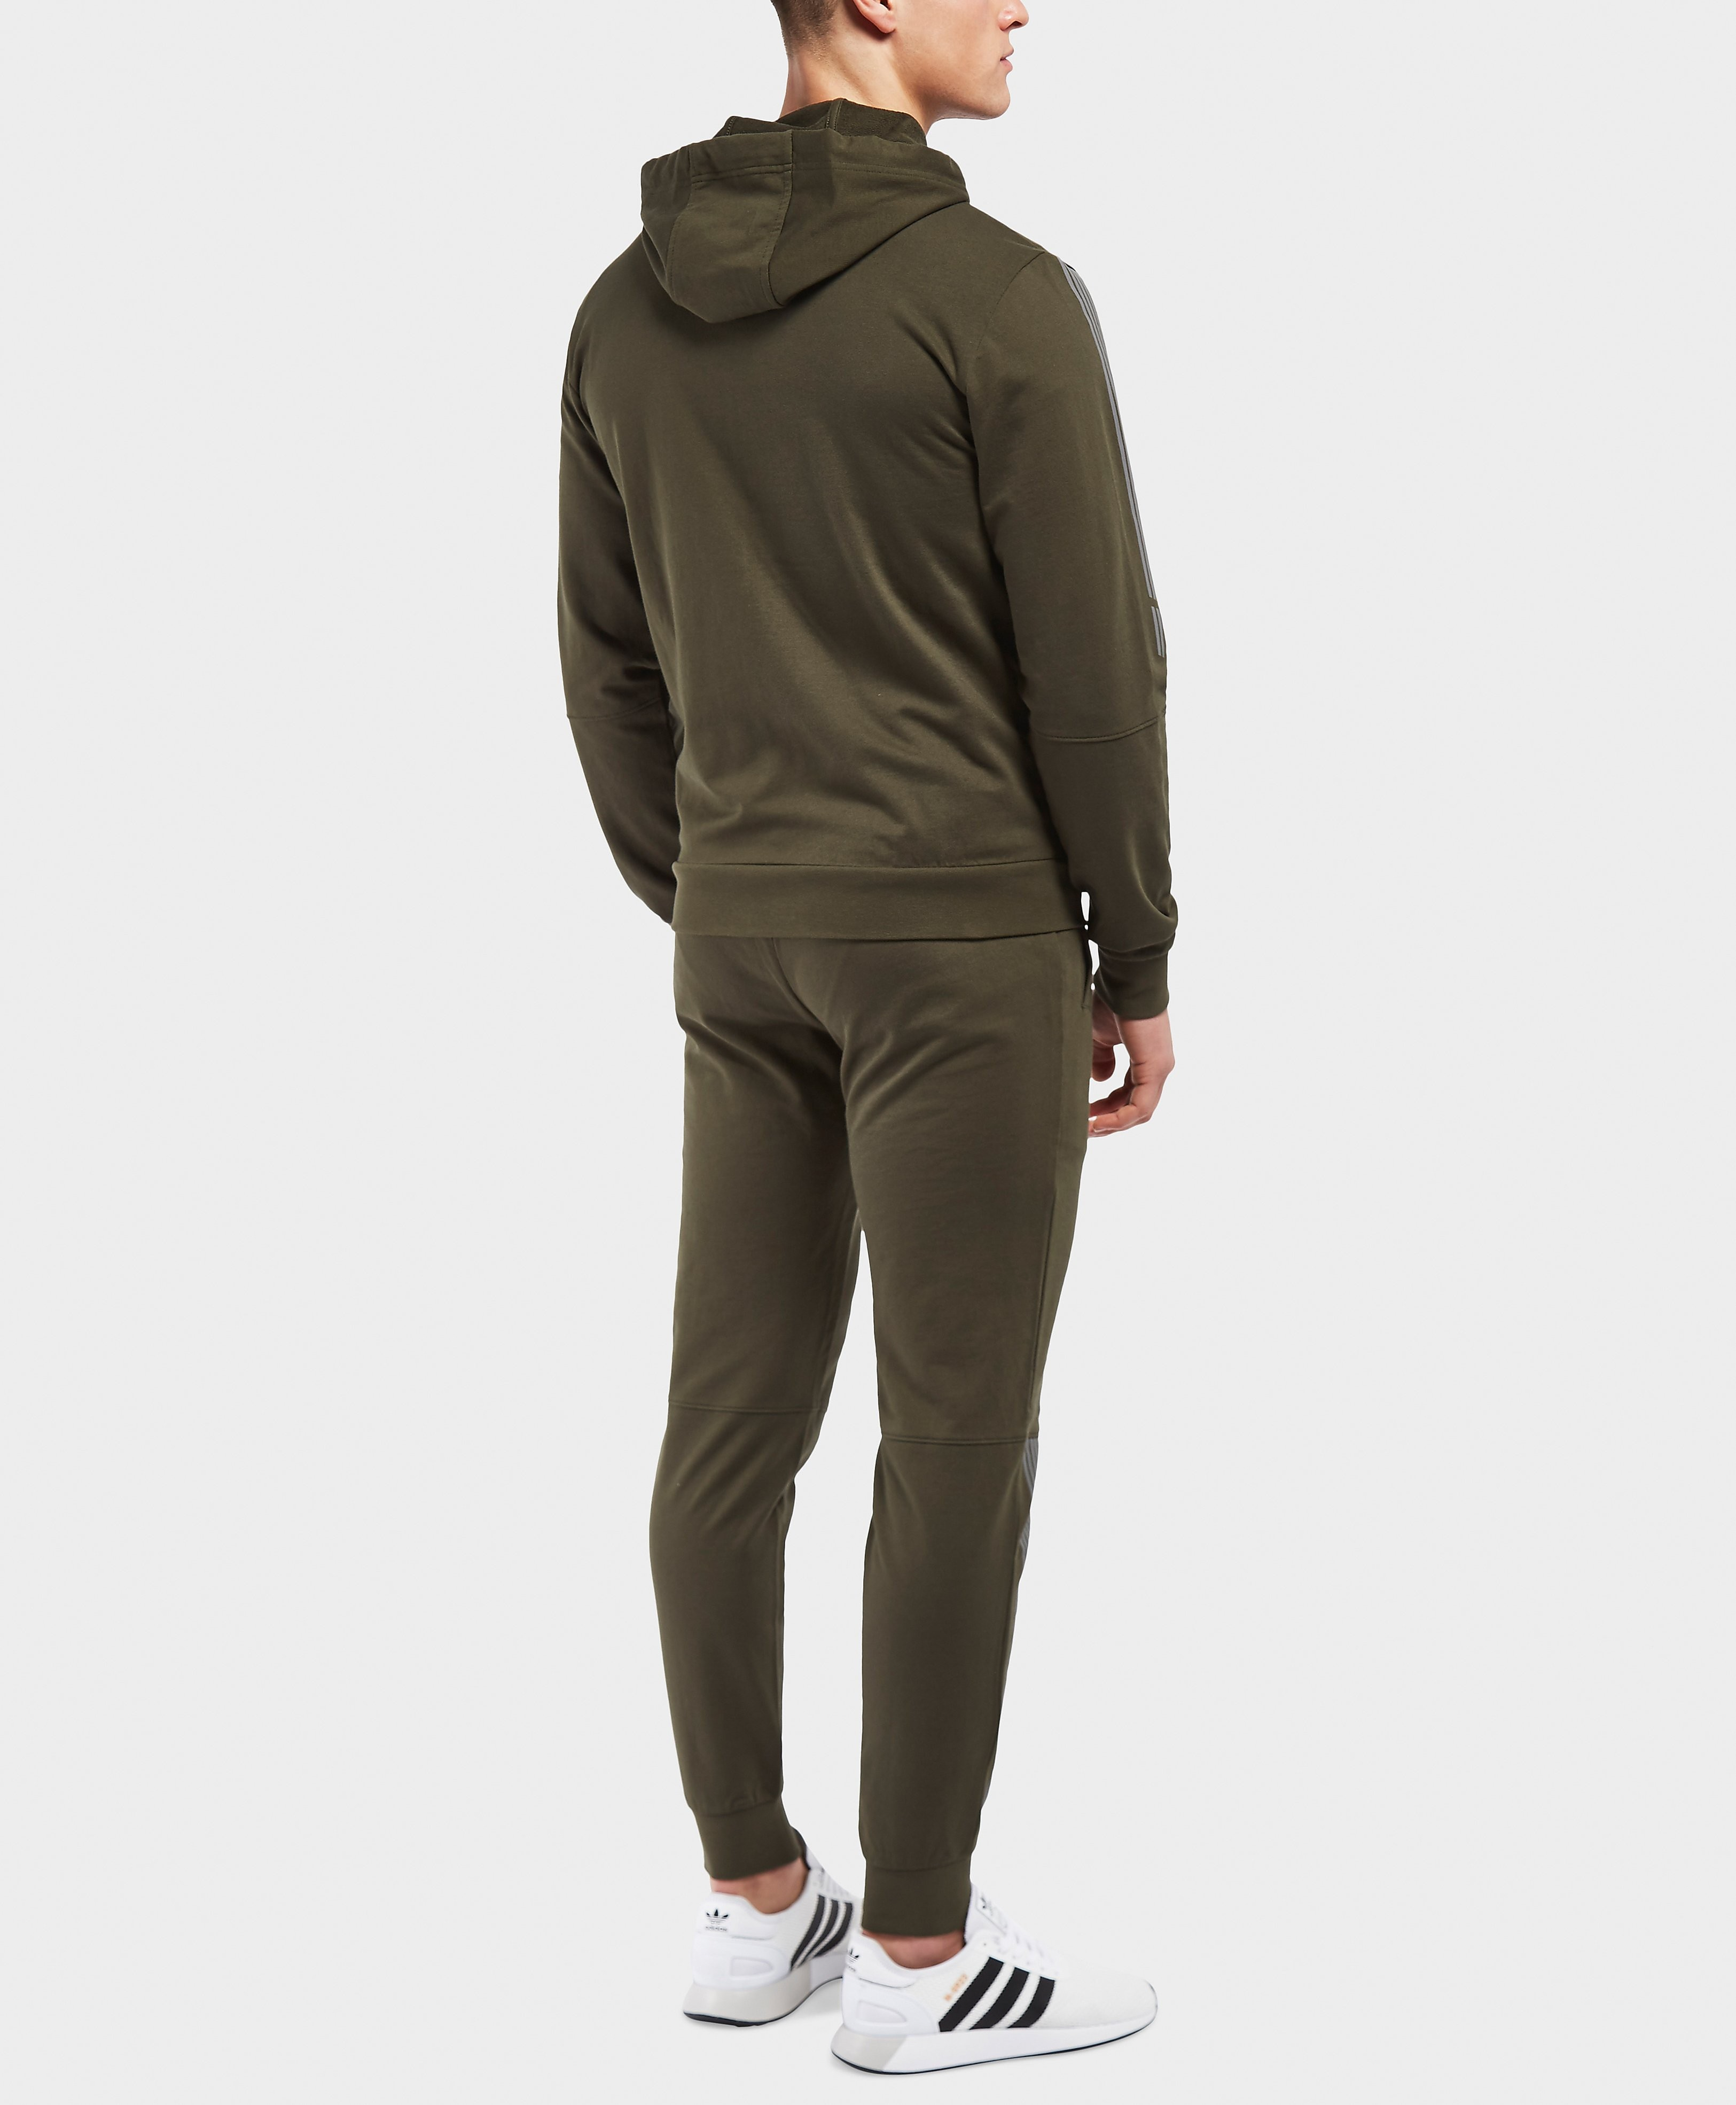 Emporio Armani EA7 7 Lines Full Hooded Tracksuit